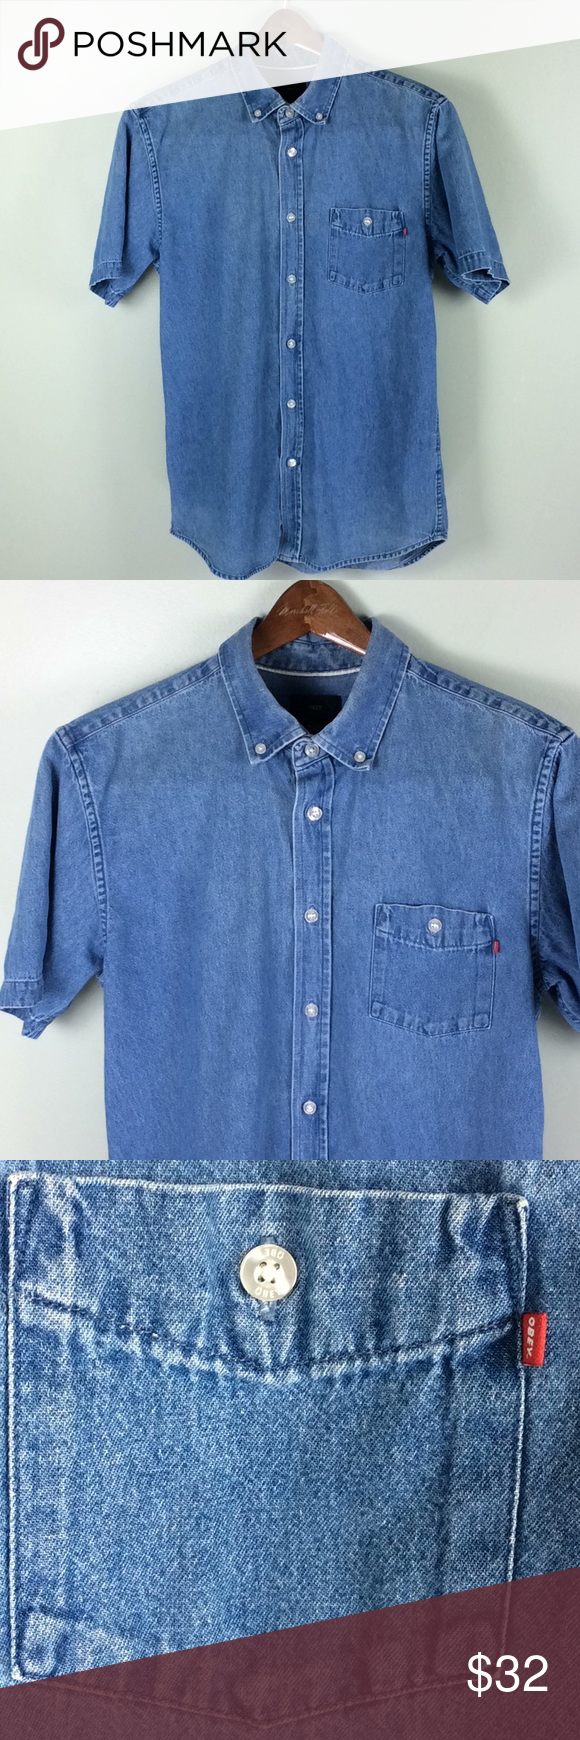 """8285252f45a OBEY Worldwide Button Front Denim Shirt OBEY Worldwide Button Front Short  Sleeve Denim Cotton Shirt Size Medium Chest-20"""" Length-28"""" Nice condition  without ..."""